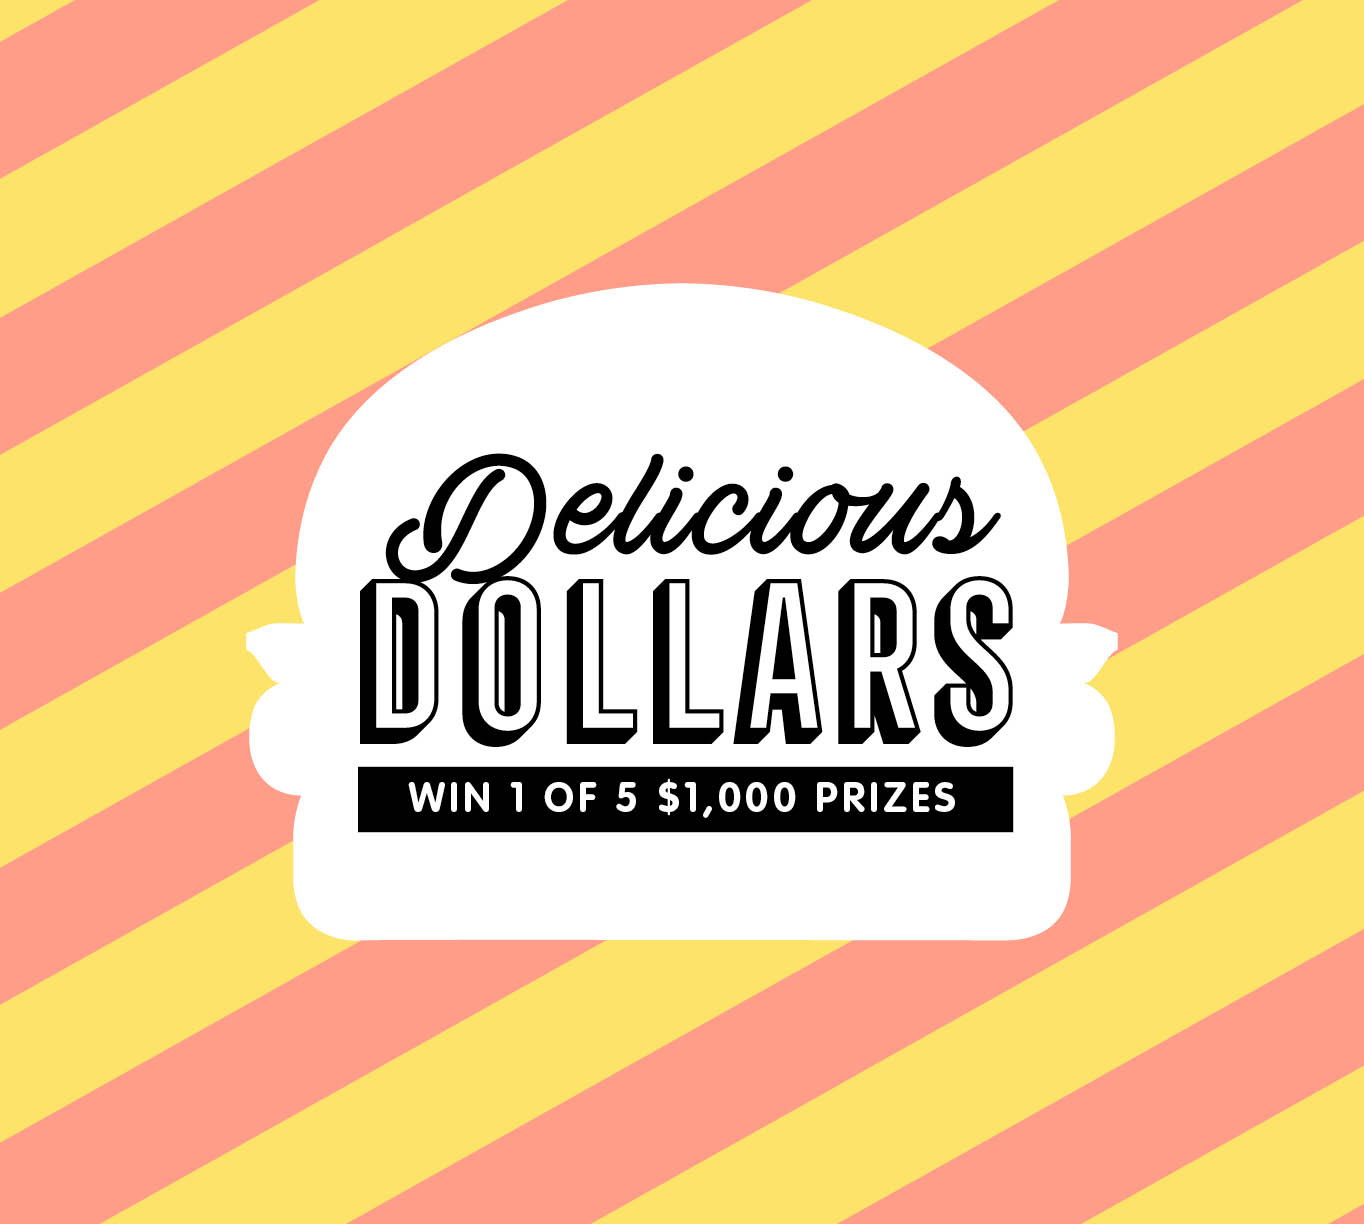 CH4779_Delicious Dollars Digital Activation_Web Tiles_682x612px